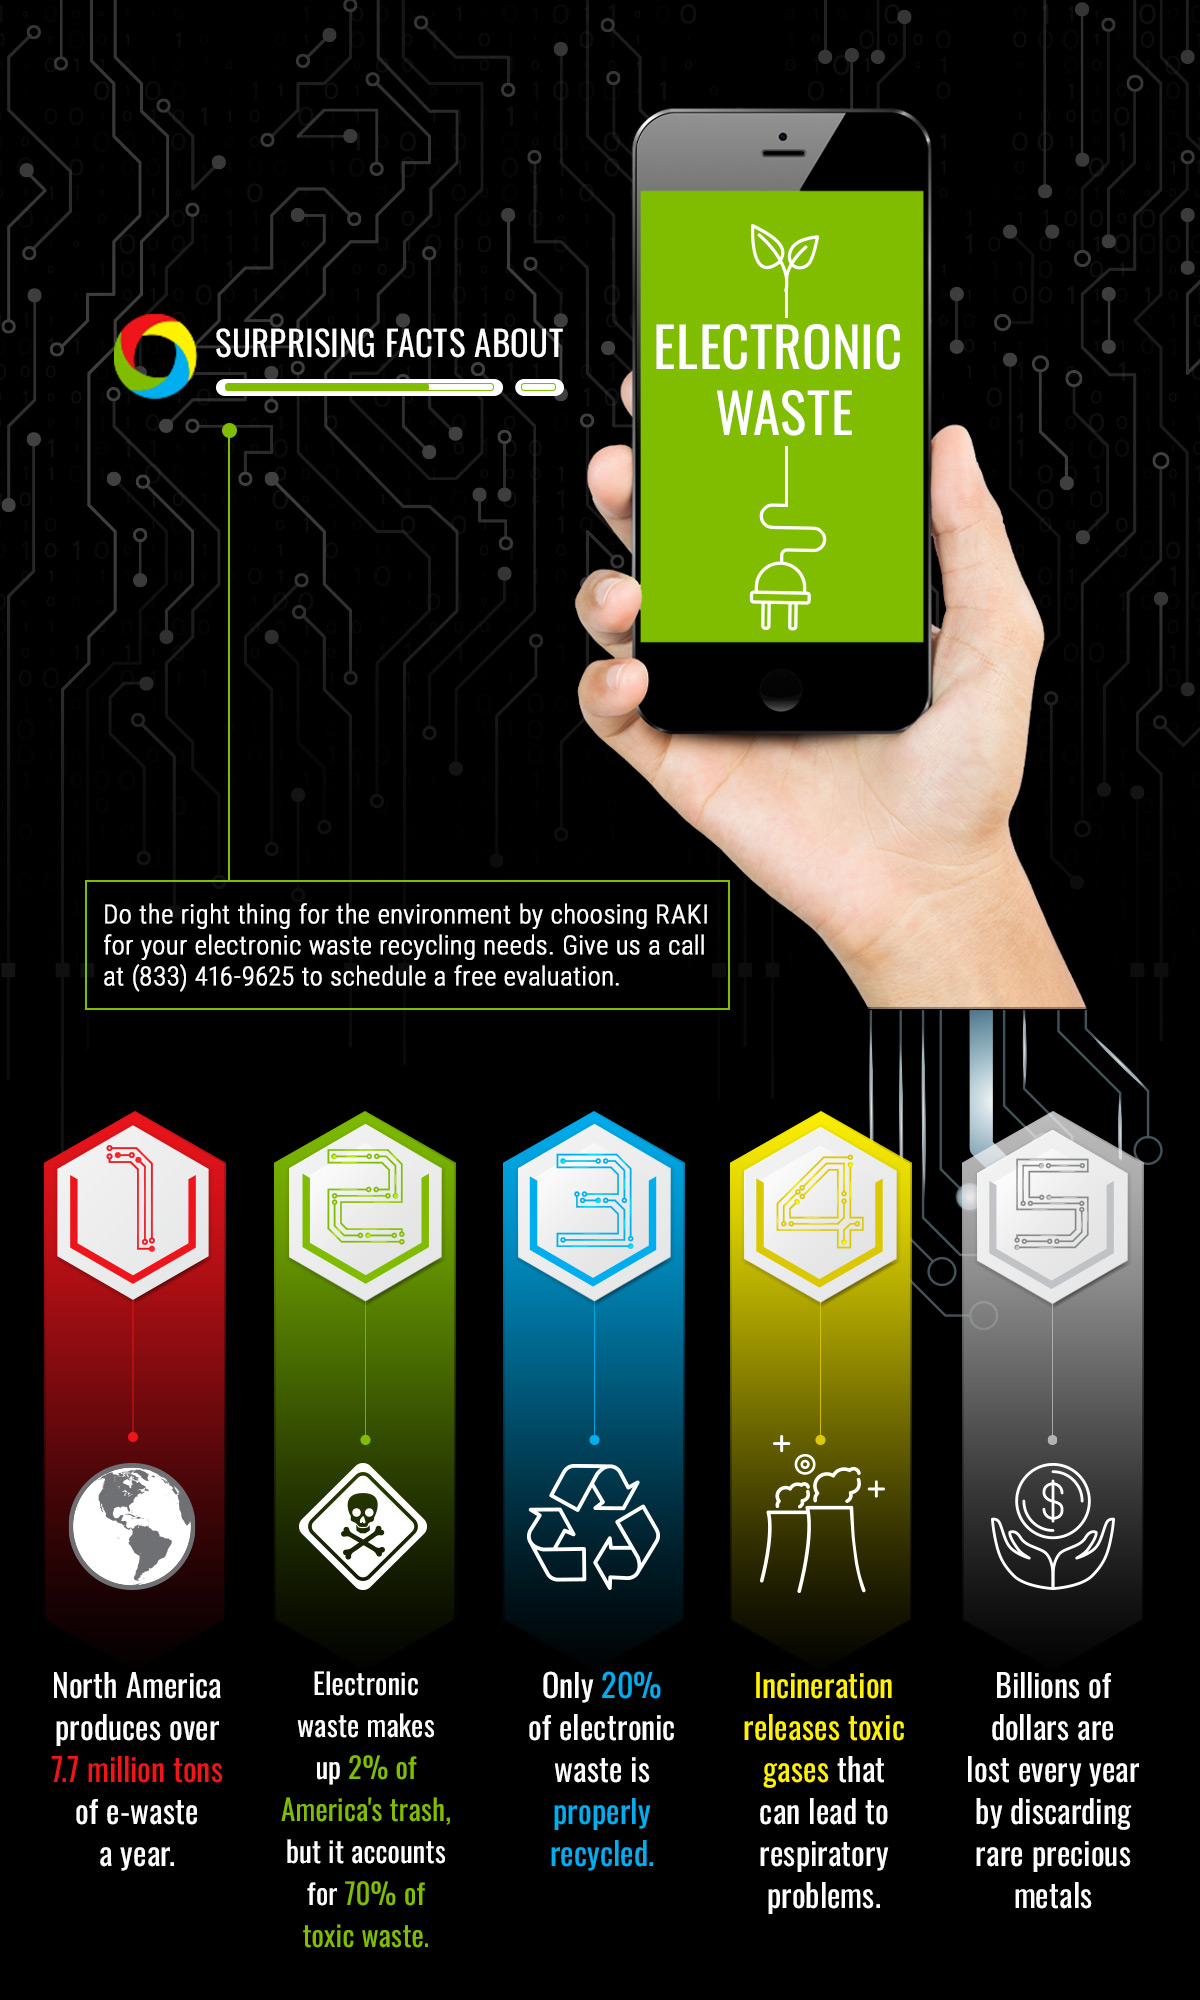 RAKI Electronics Recycling infographic showing e-waste recycling facts